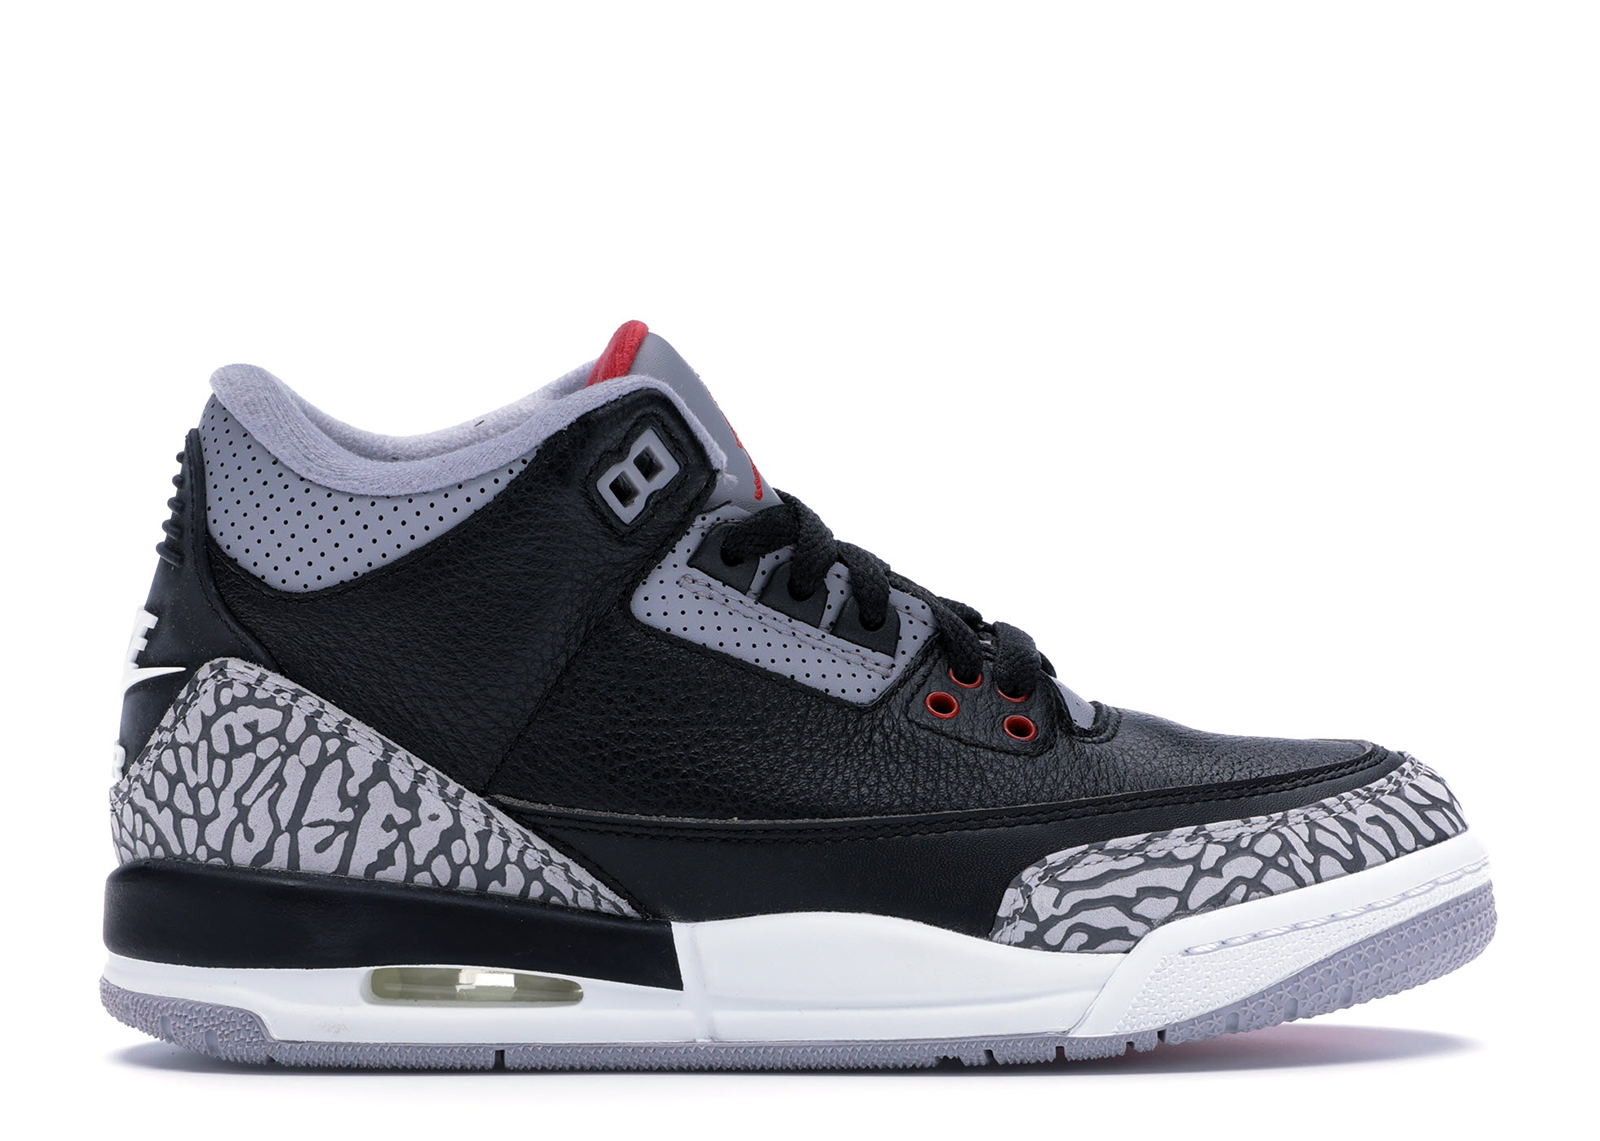 Air Jordan 3 Retro Og Gs Black Cement 2018